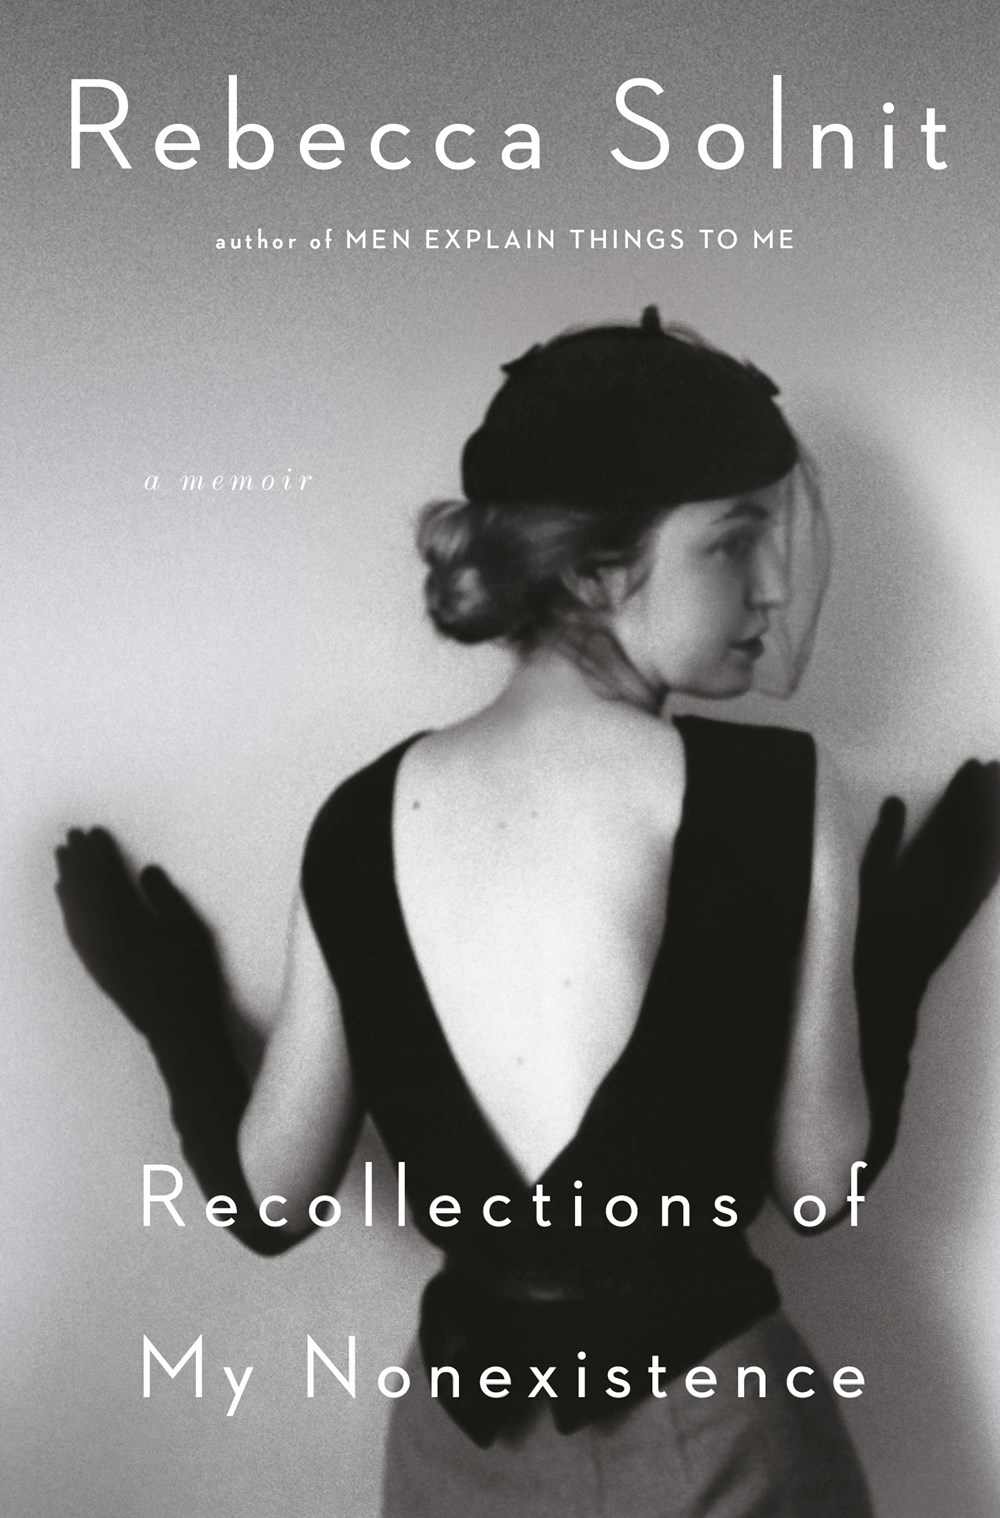 Recollections of My Nonexistence: A Memoir by Rebecca Solnit